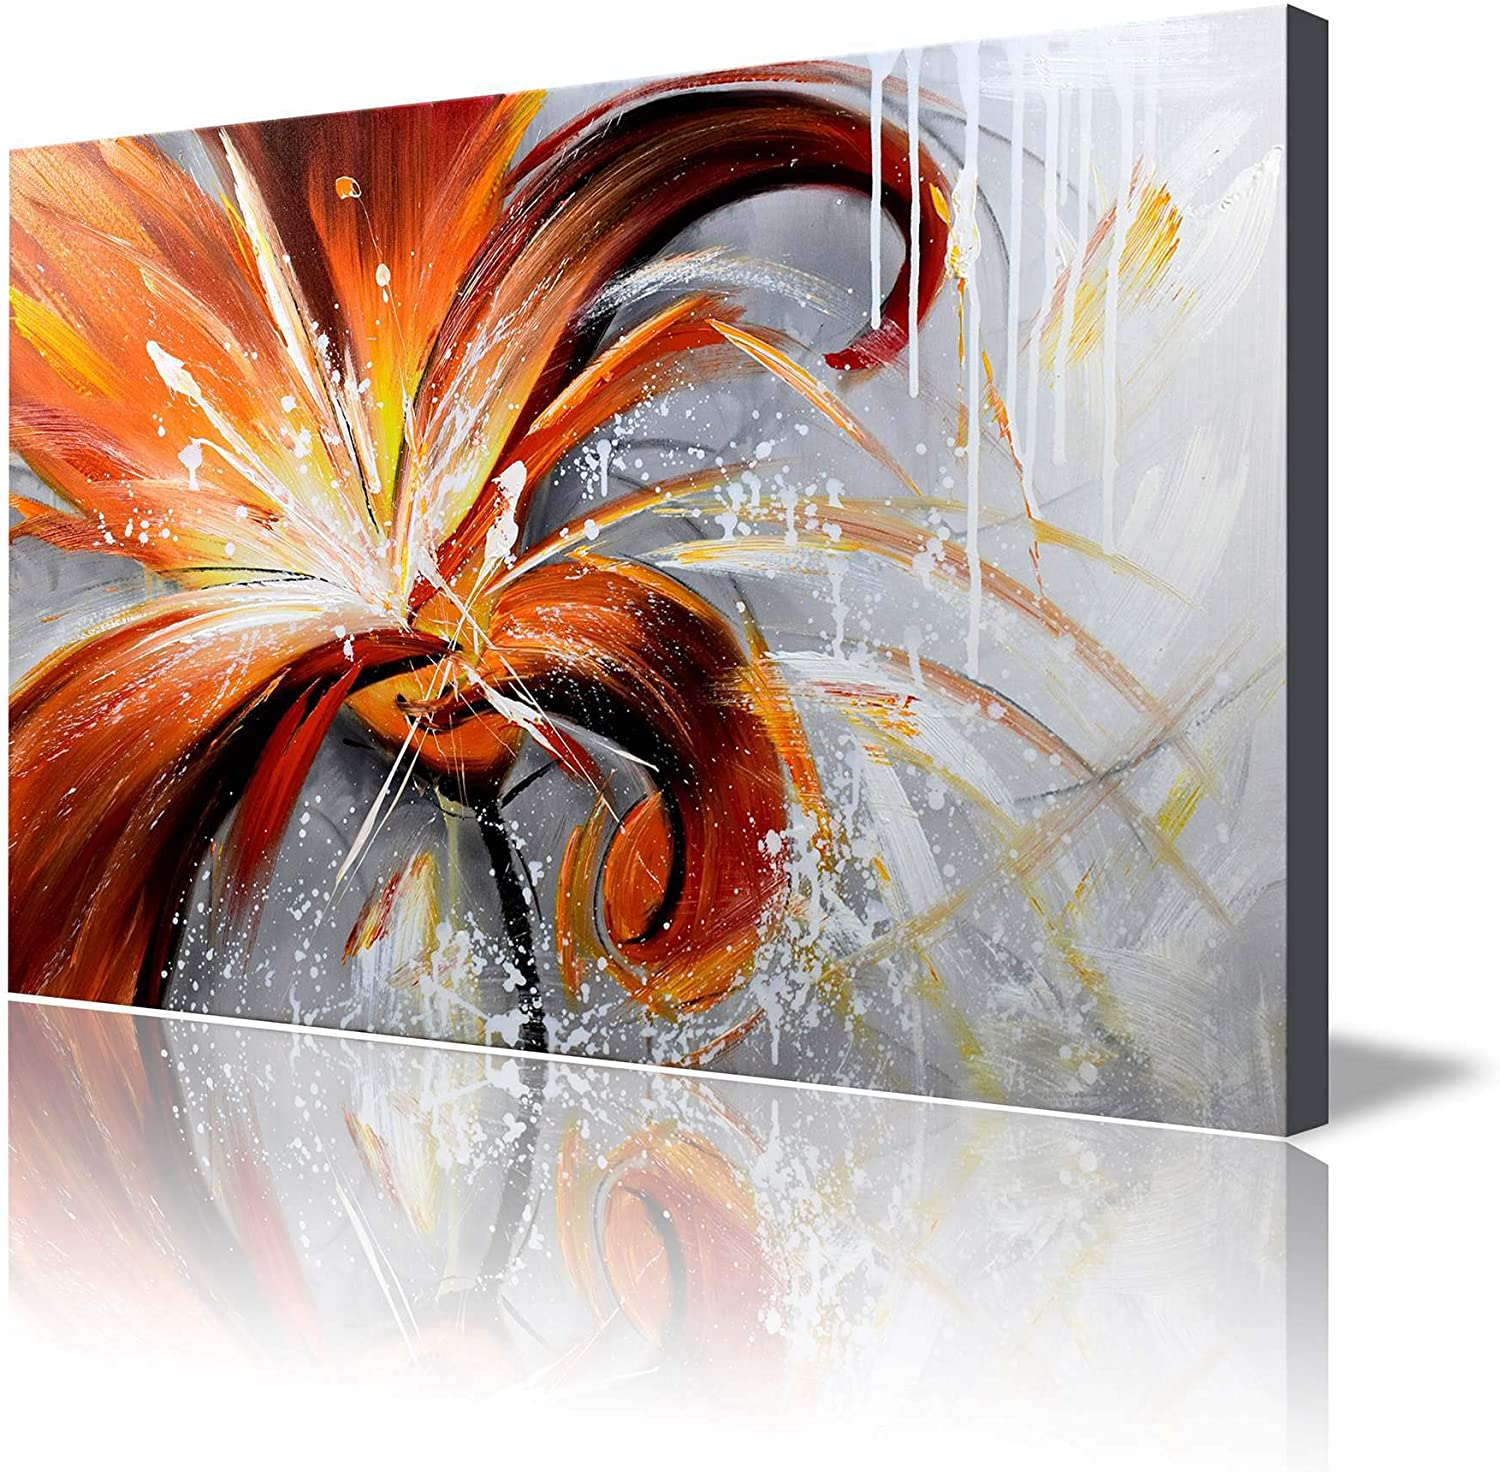 Amazon Com Artland 24x36 Inch Fall Story Gallery Wrapped Hand Painted Canvas Flower Wall Art Paintings